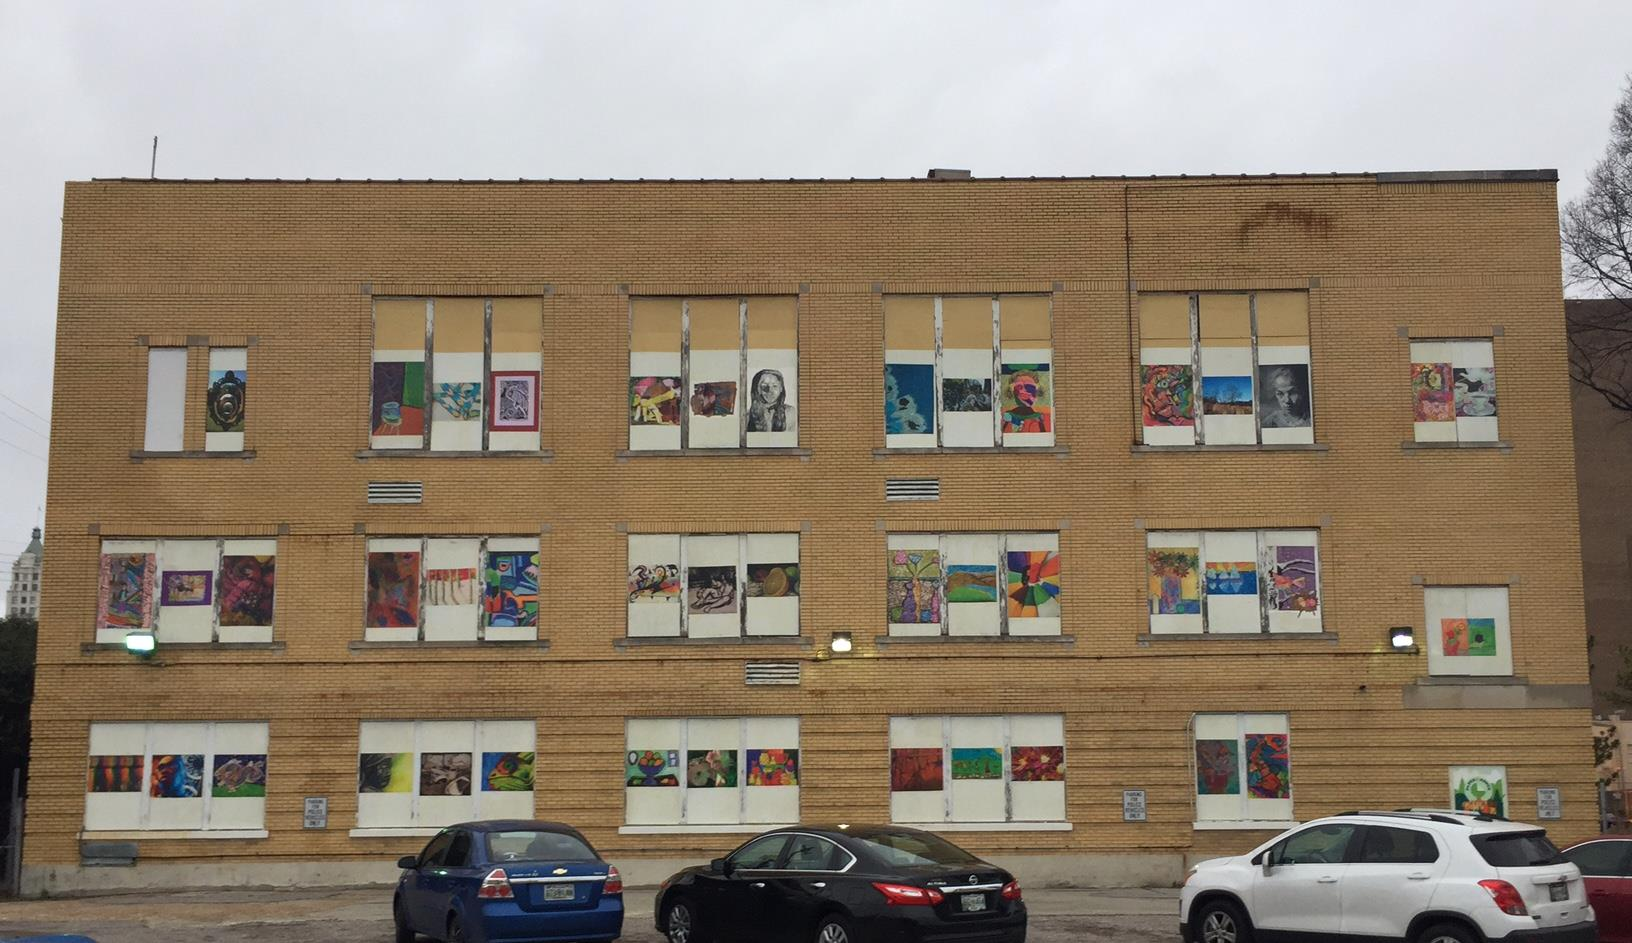 247 Washington Ave, Wall completed with student artwork.